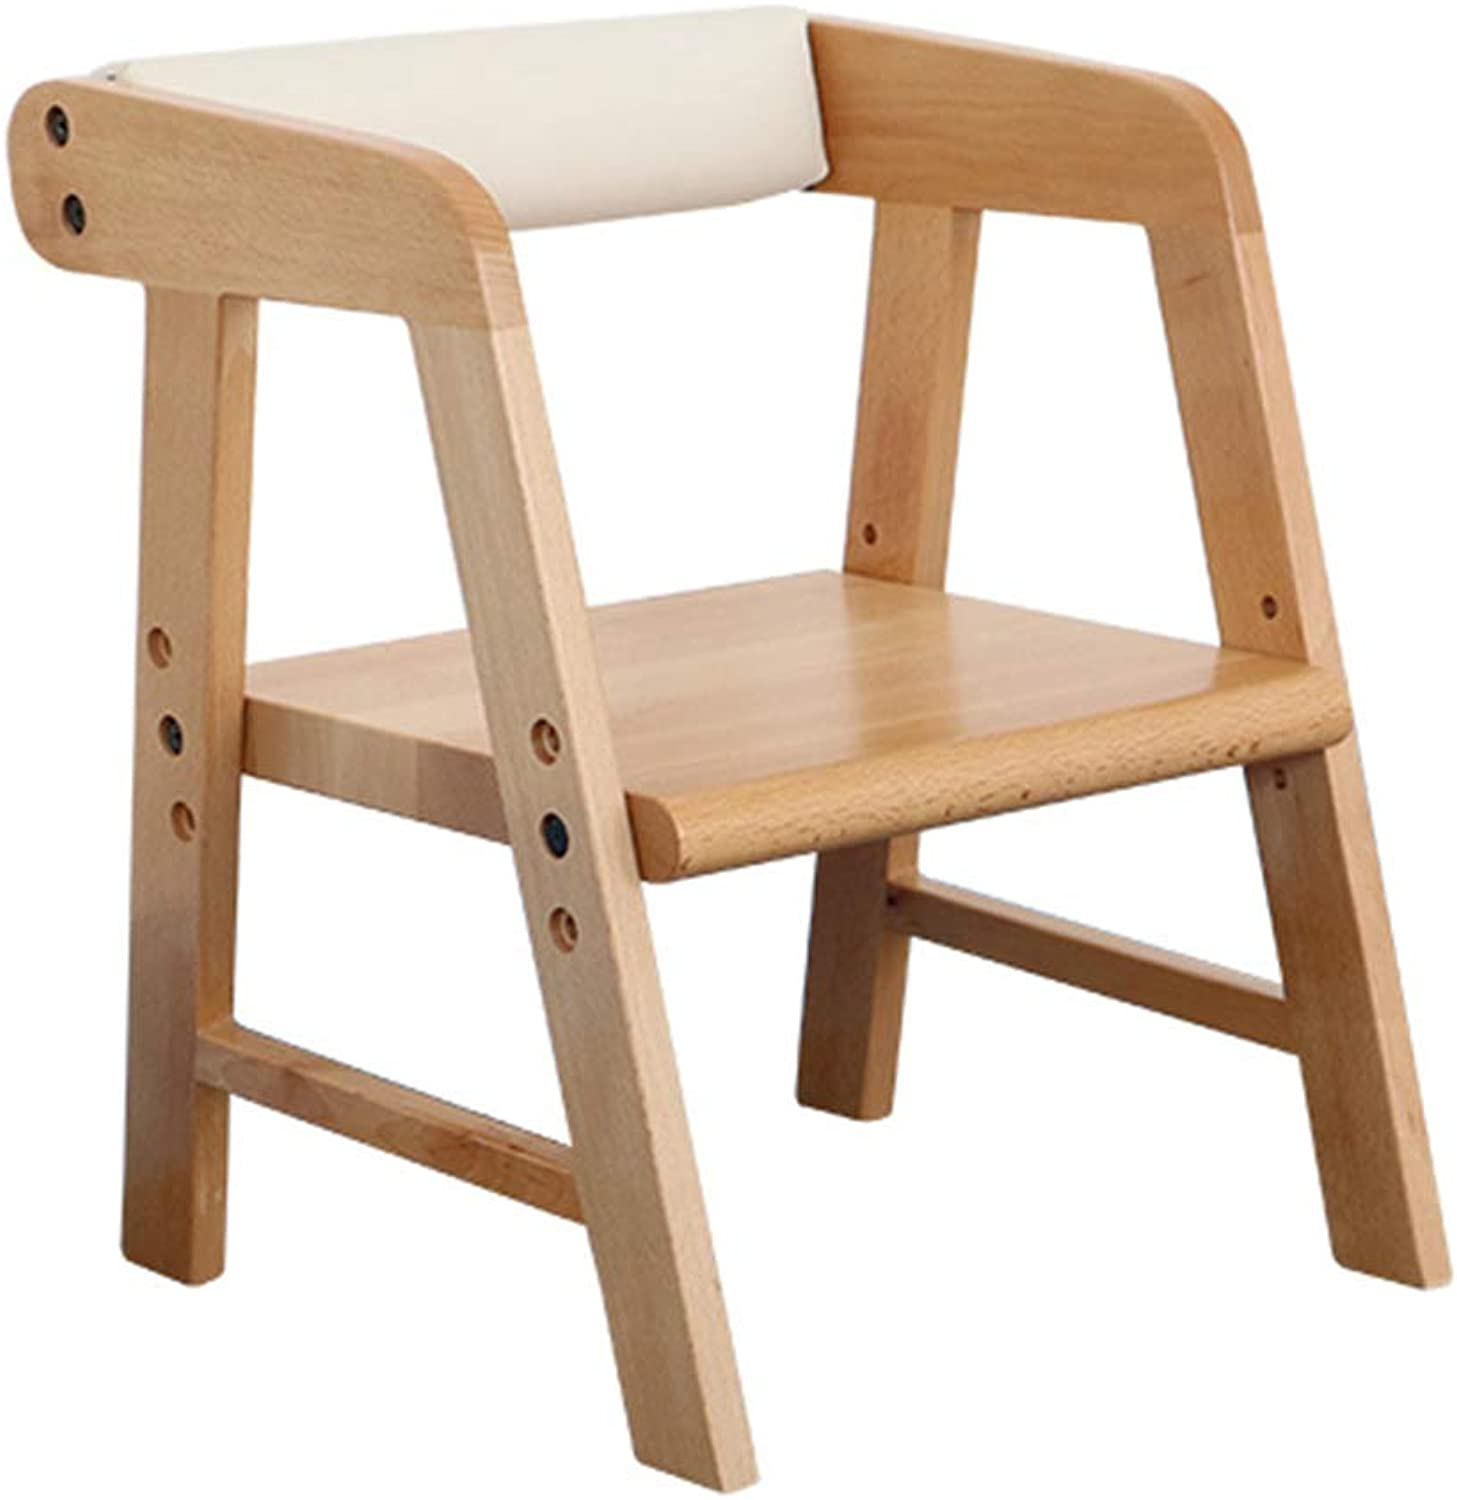 Chair And Chair For Toddlers